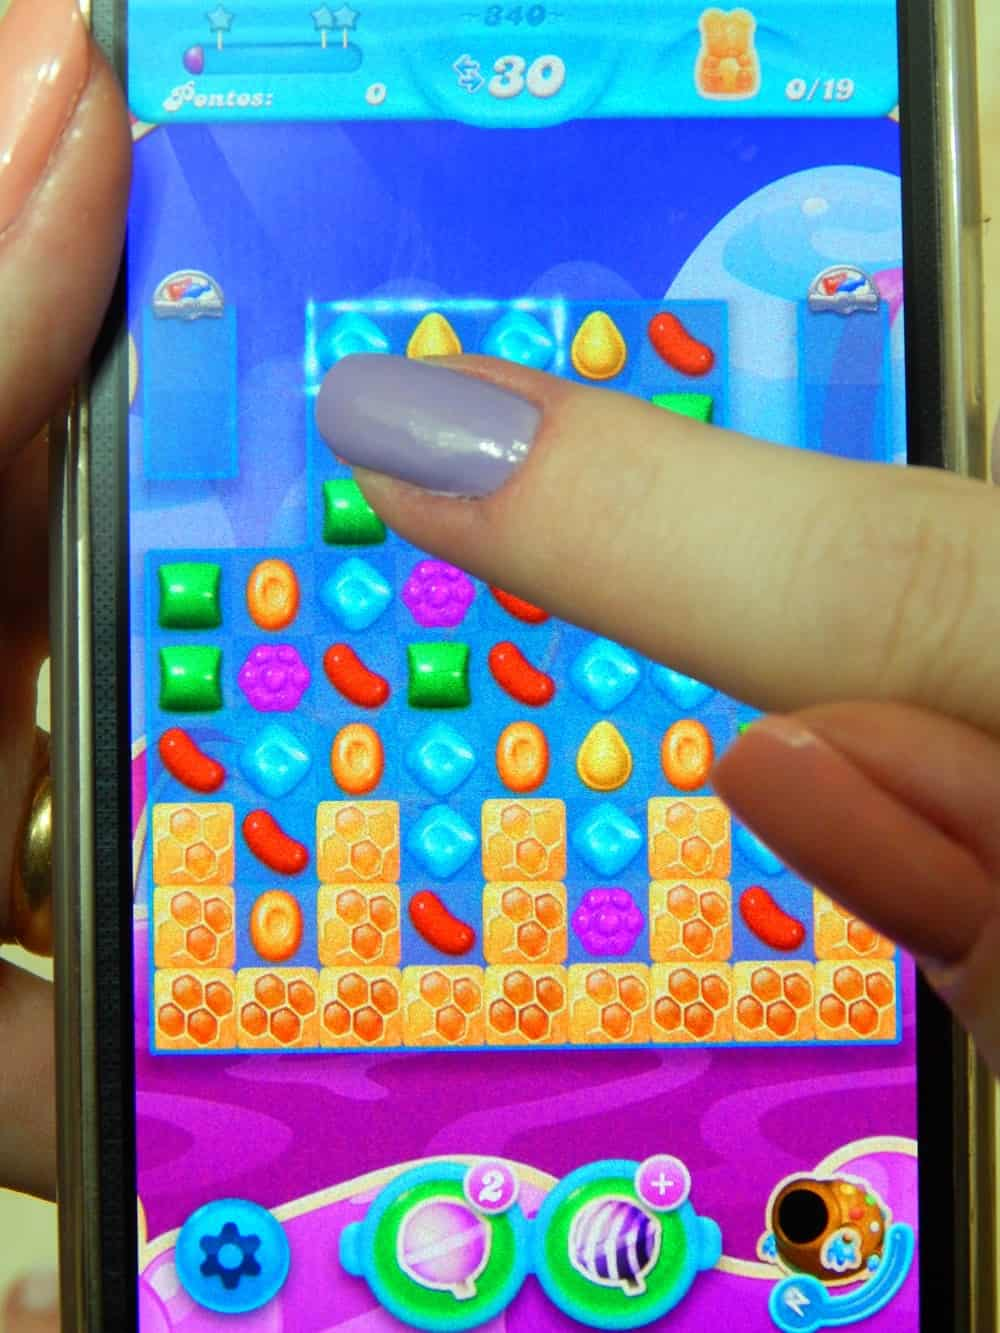 A photo of a person playing candy crush on their smartphone.